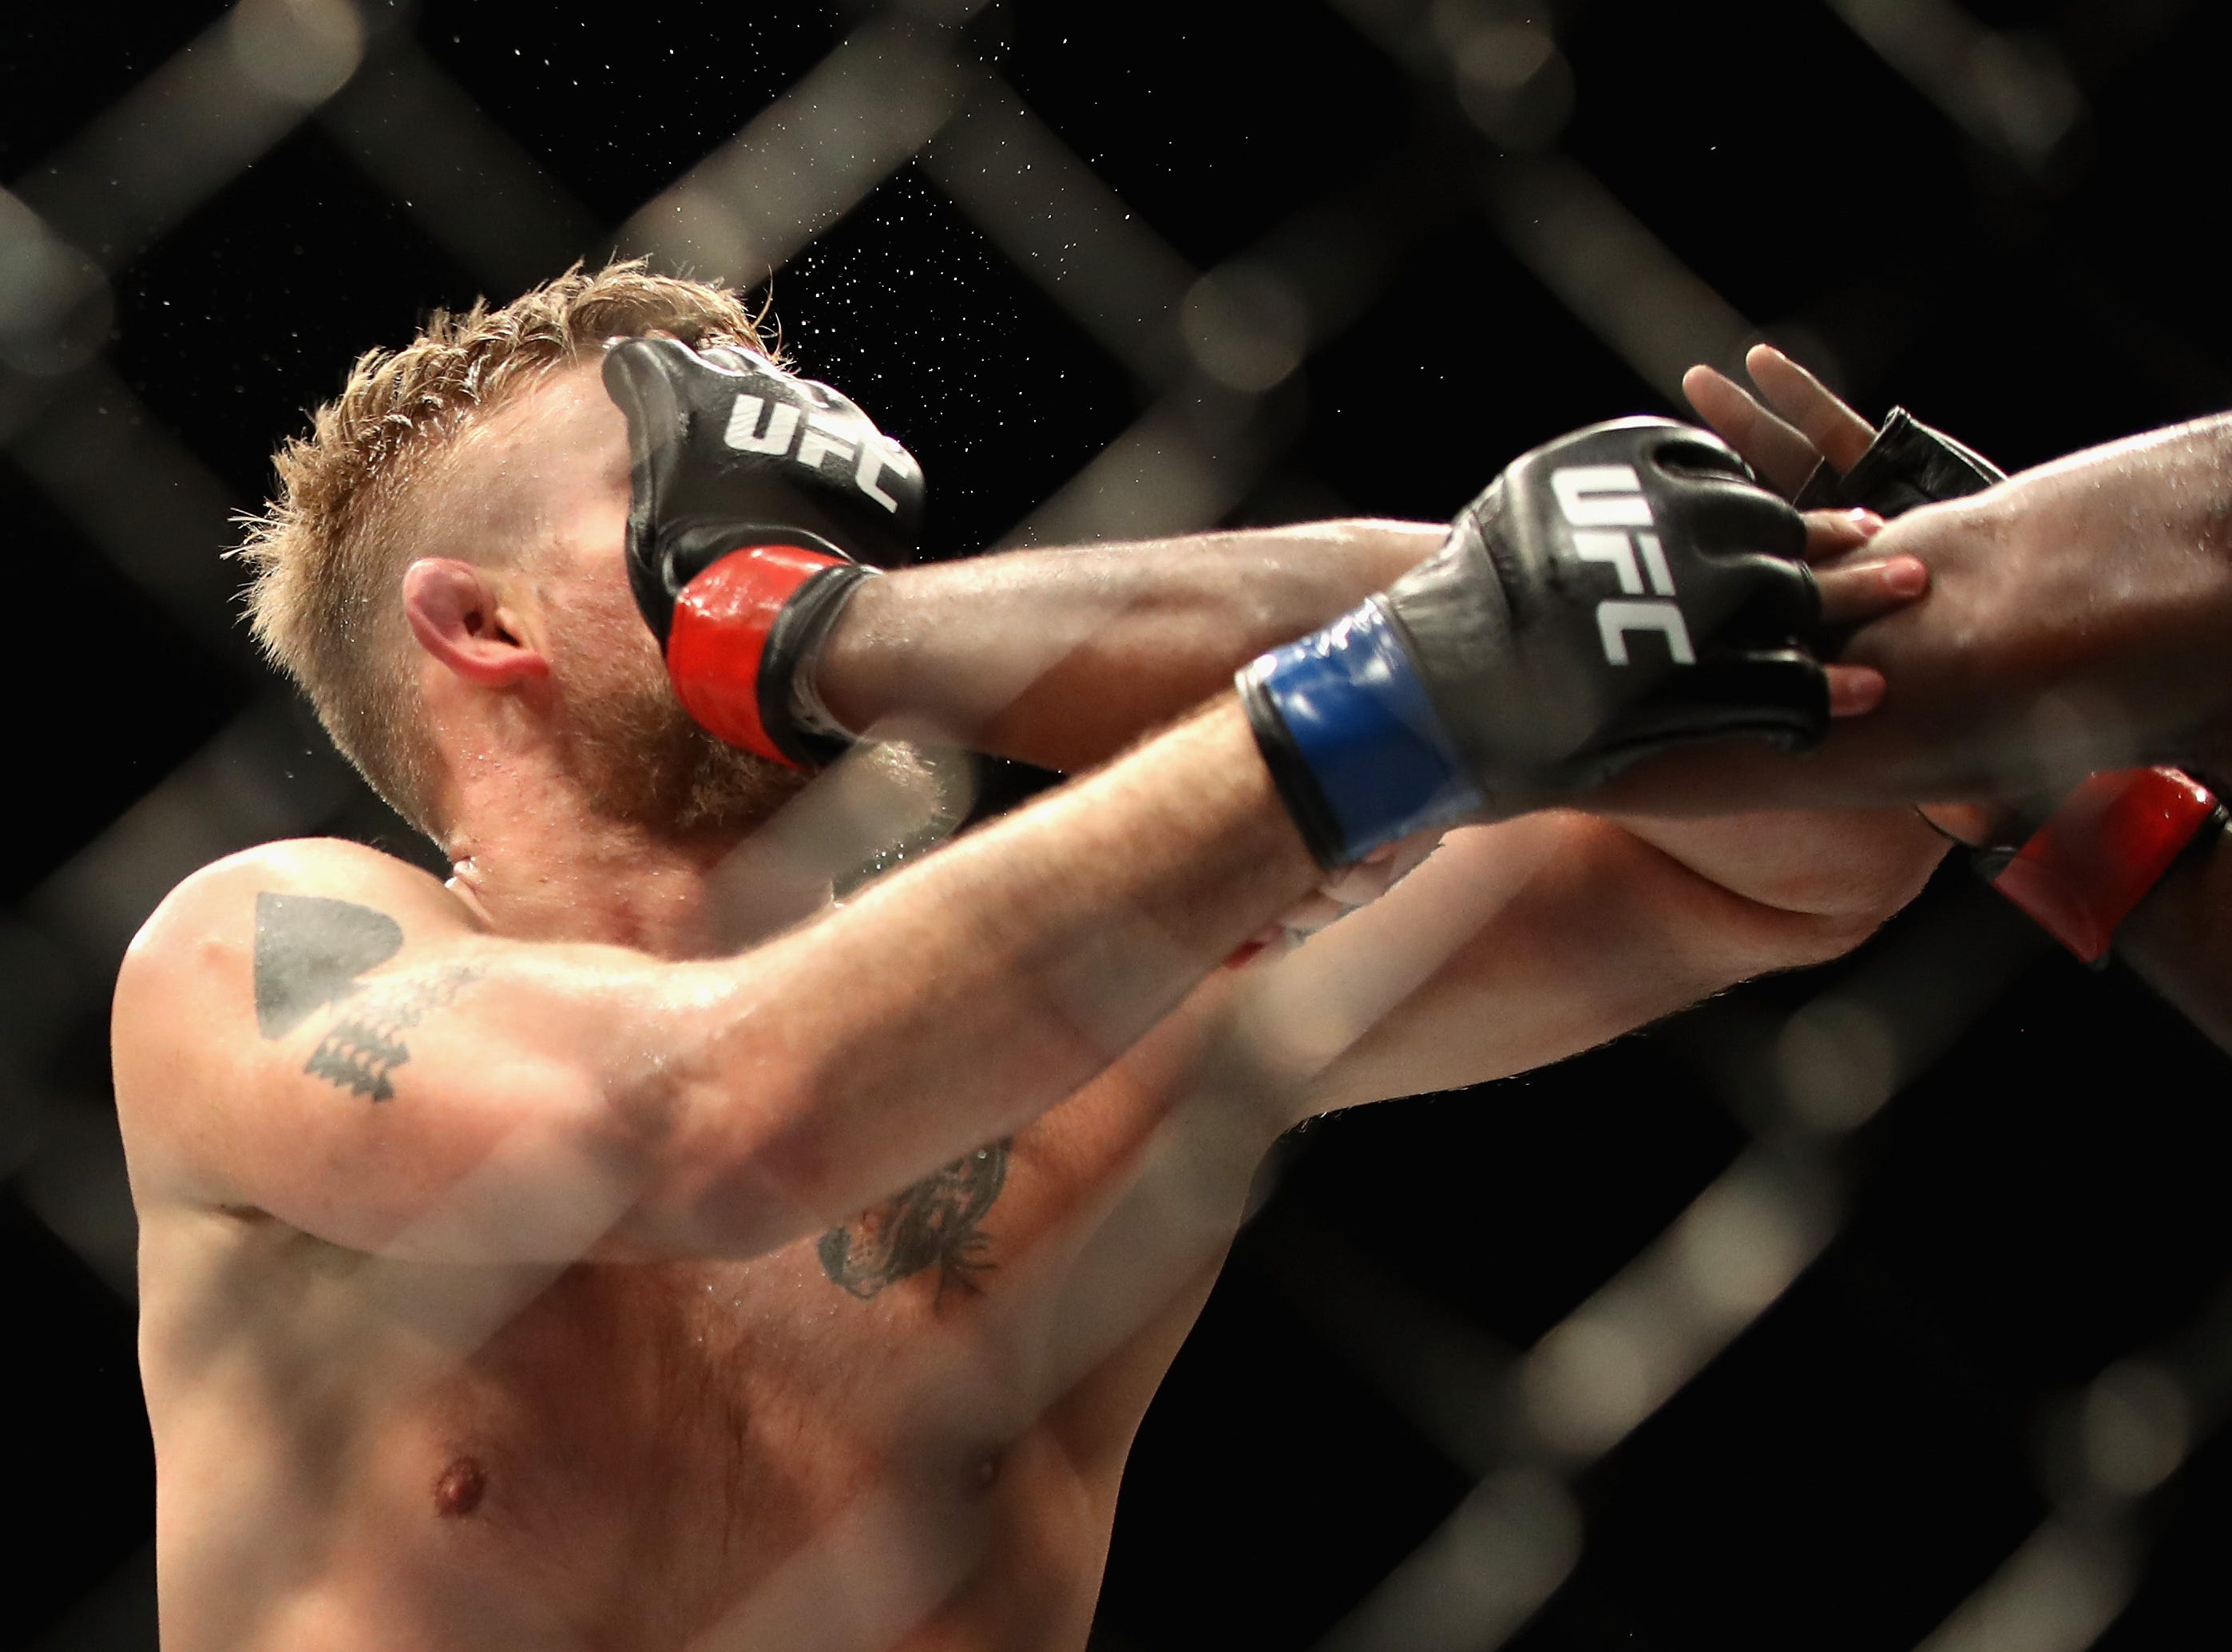 INGLEWOOD, CA - DECEMBER 29:   Alexander Gustafsson of Sweden is hit in the fact by Jon Jones during a Light Heavyweight titlebout during the UFC 232 event inside The Forum on December 29, 2018 in Inglewood, California.   Jones defeated Gustafsson by KO.  (Photo by Sean M. Haffey/Getty Images)